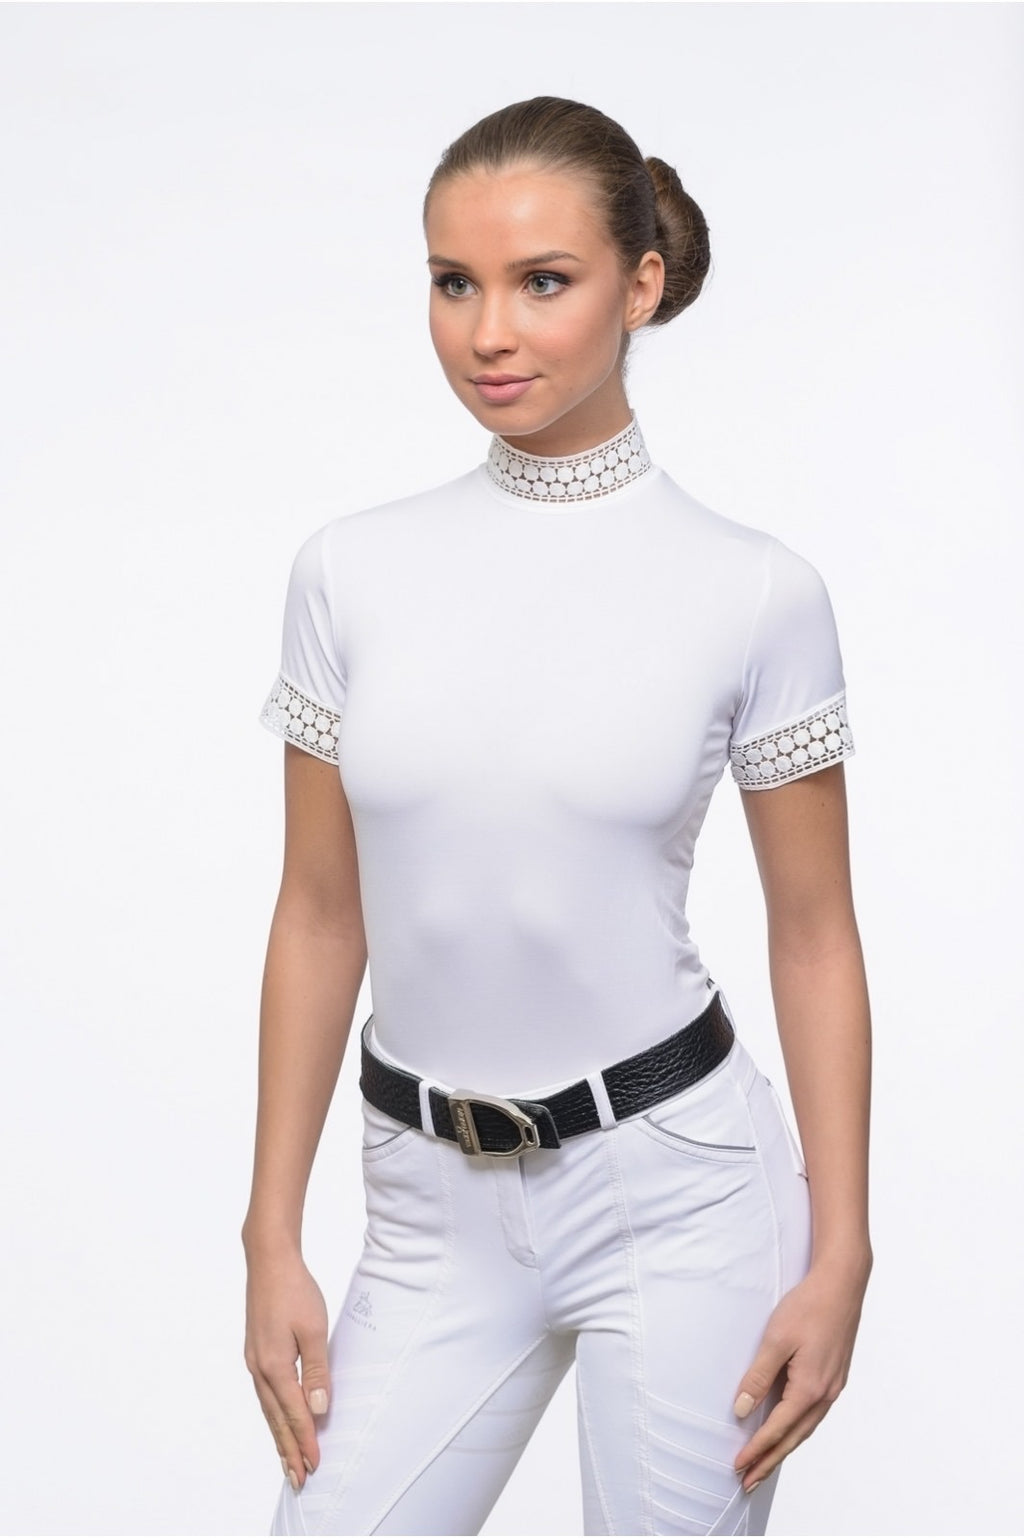 Cavalliera Bella Lace Technical Show Shirt